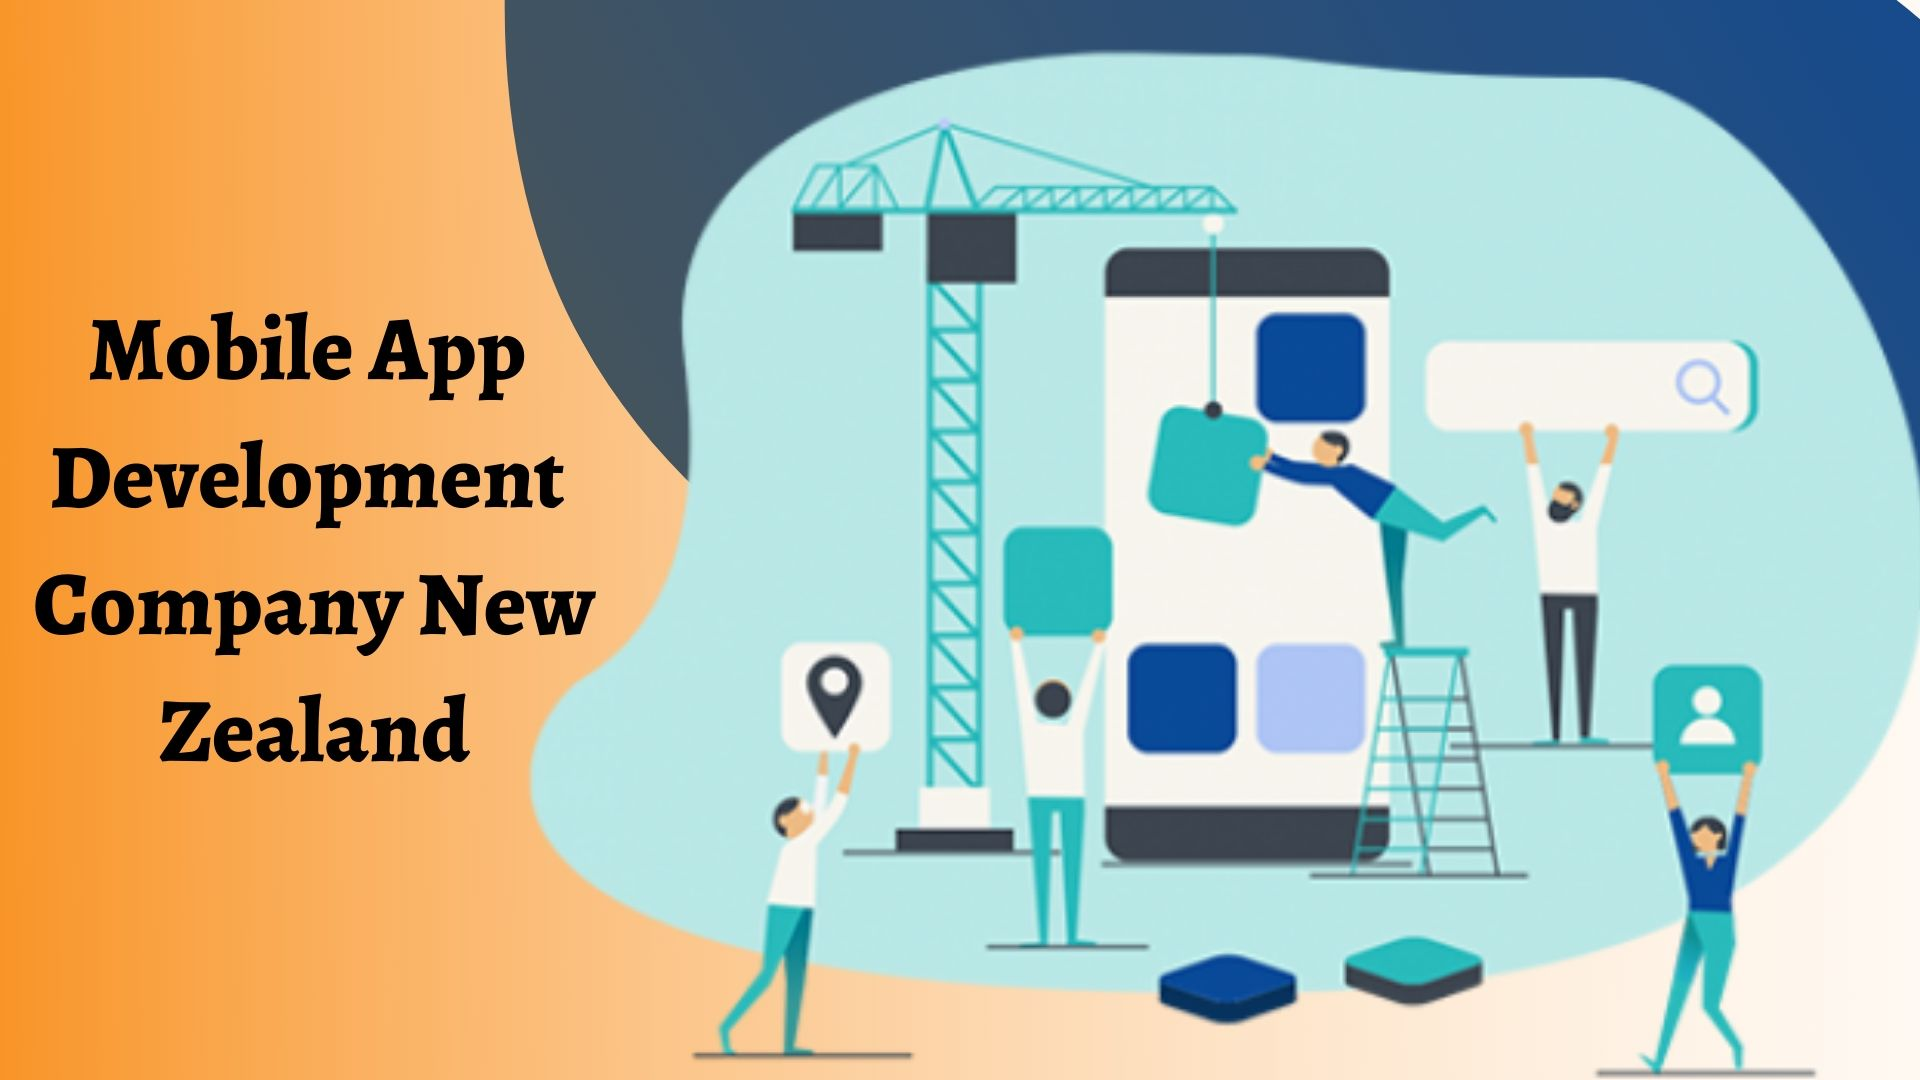 Mobile App Development Company in New Zealand